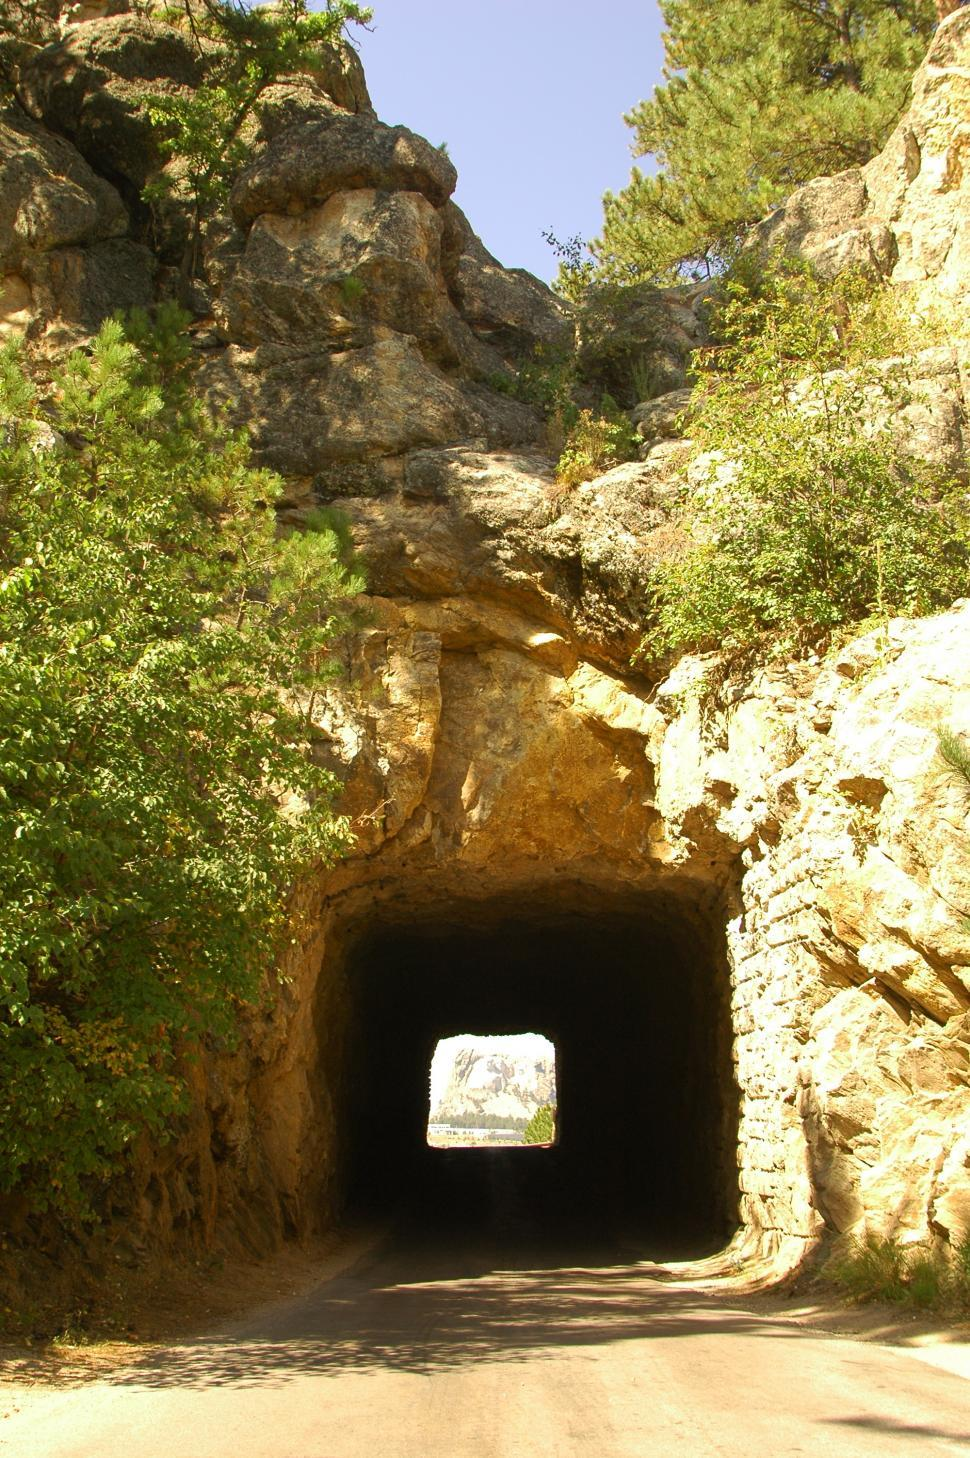 Download Free Stock HD Photo of Tunnel Carrved in Rock Online